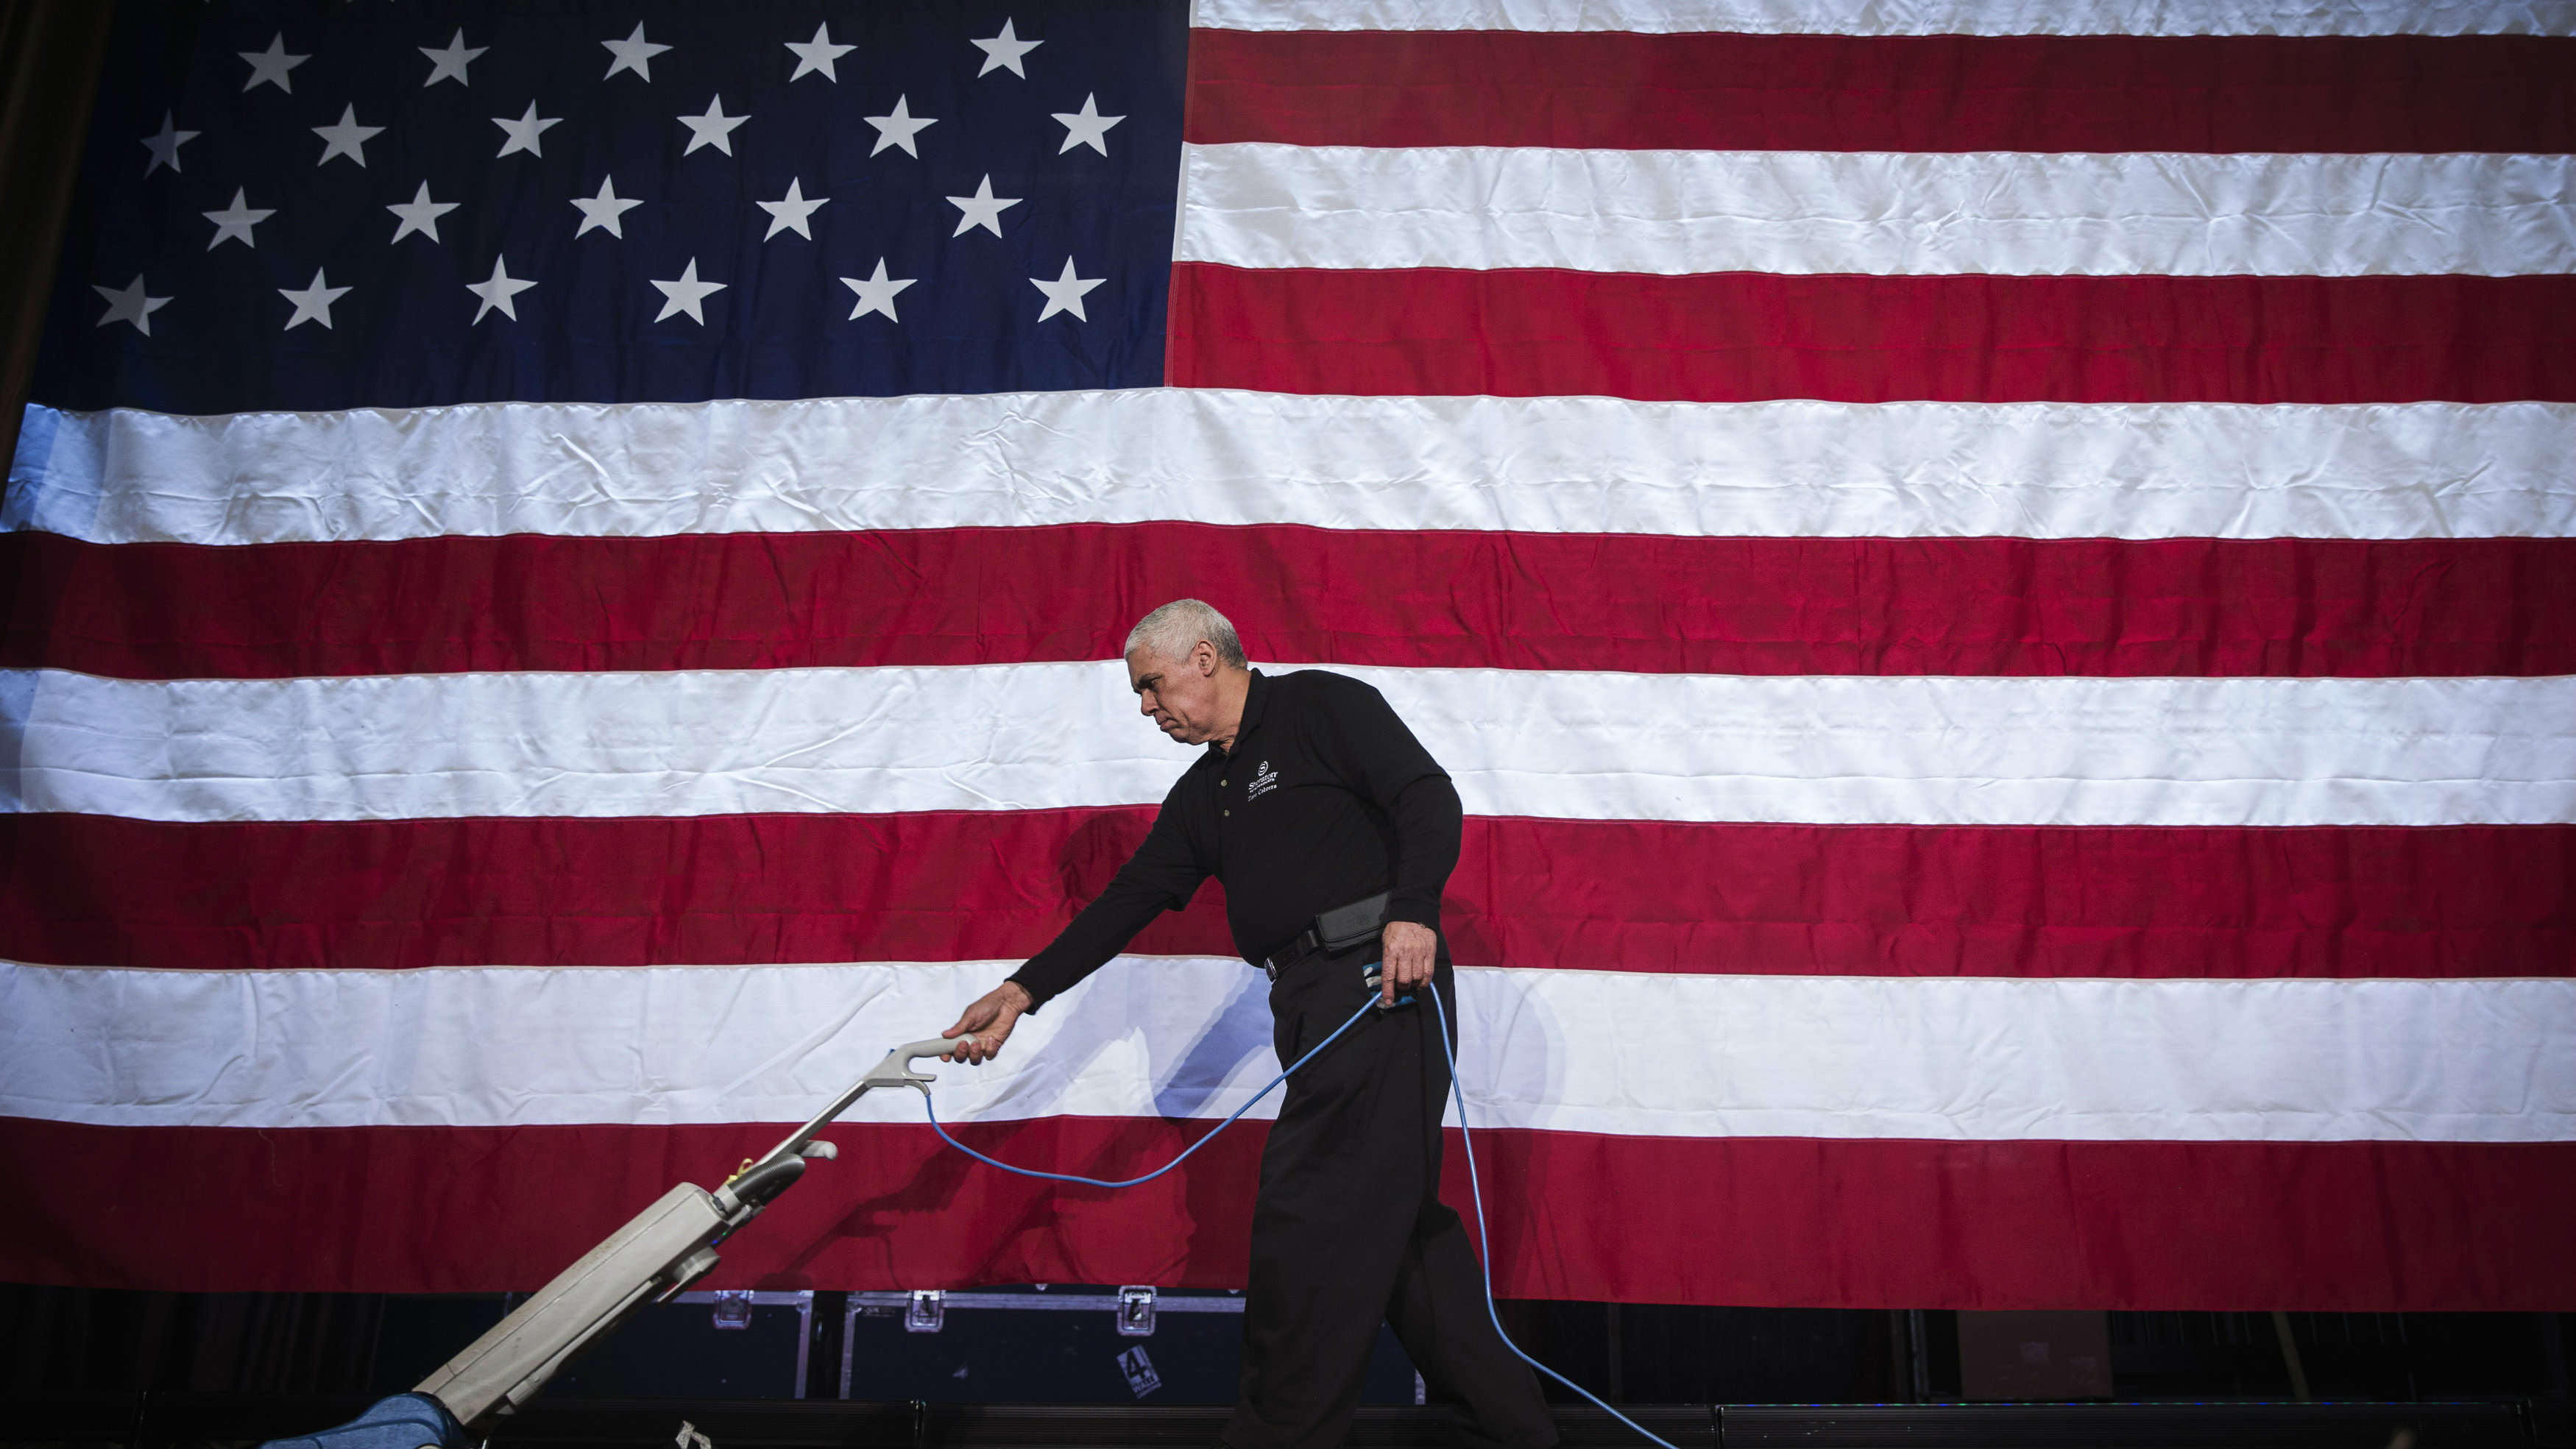 Worker cleans a stage in front of a US flag